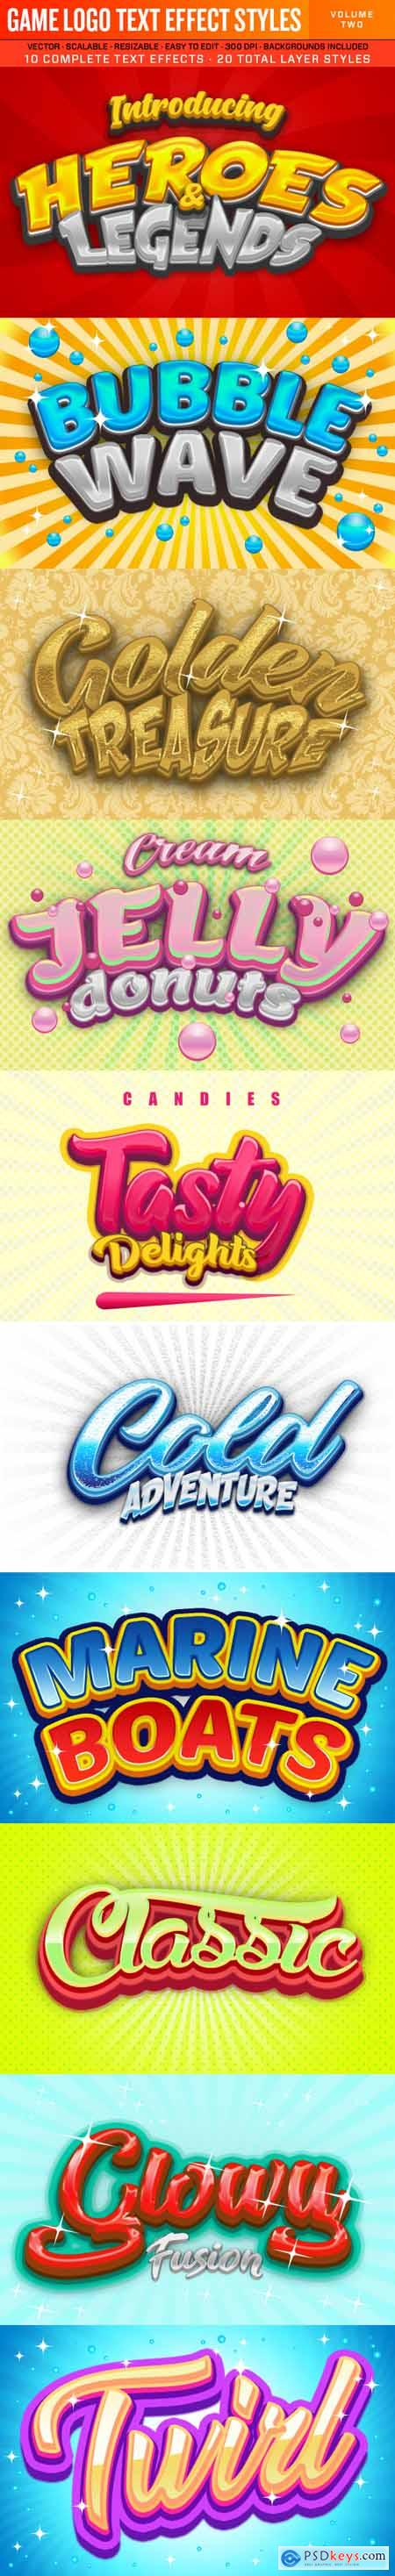 Graphicriver Game Logo Text Effect Styles 2